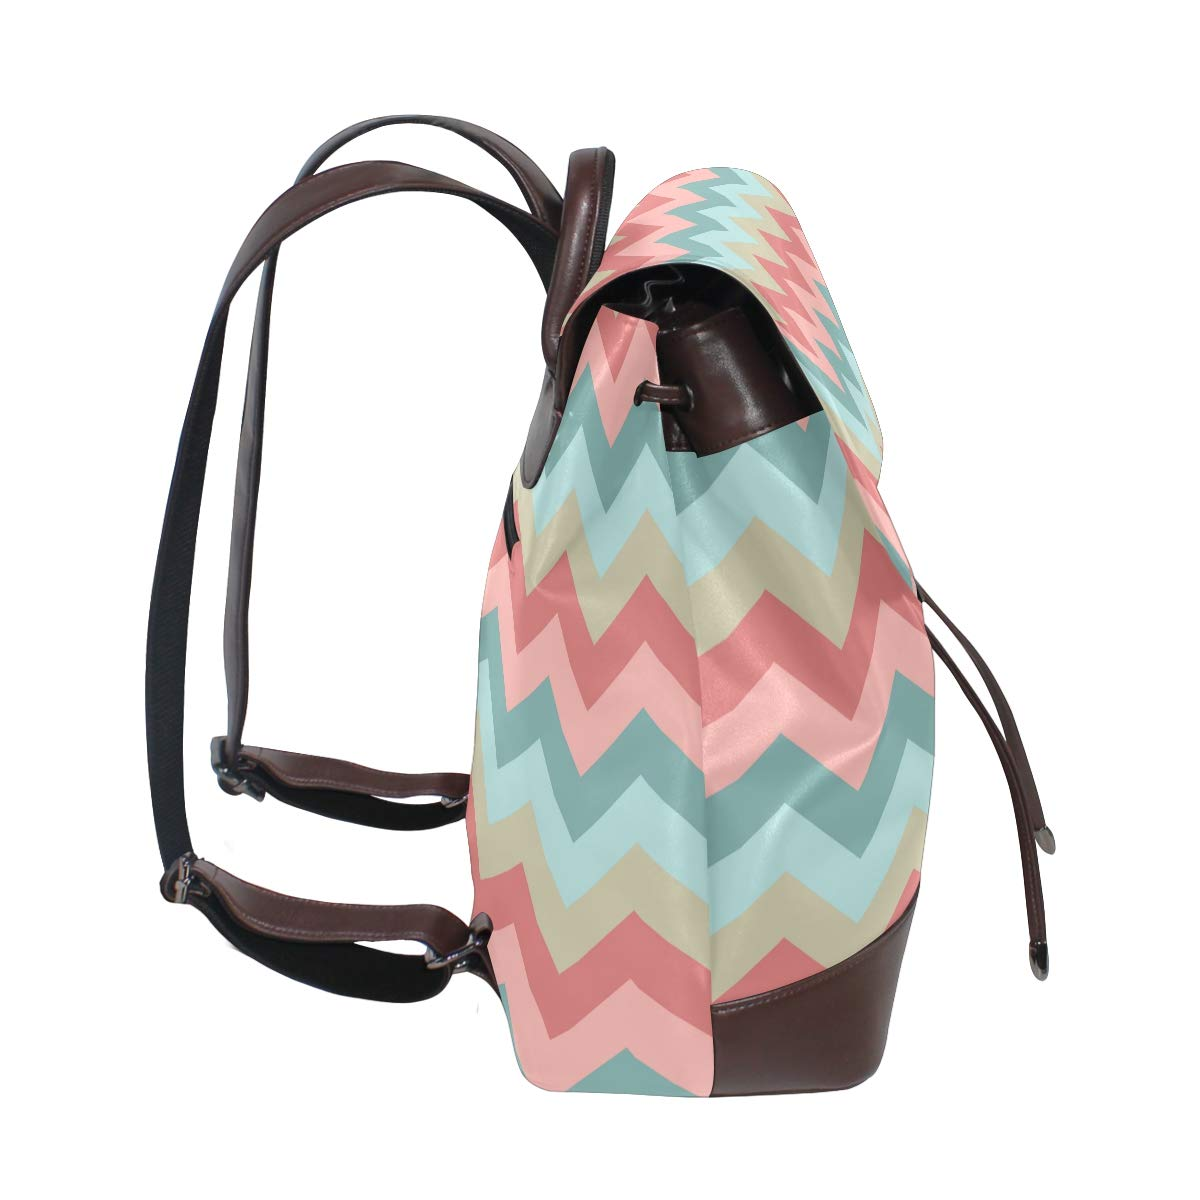 KEAKIA Women PU Leather Chevron Pattern Texture Backpack Purse Travel School Shoulder Bag Casual Daypack